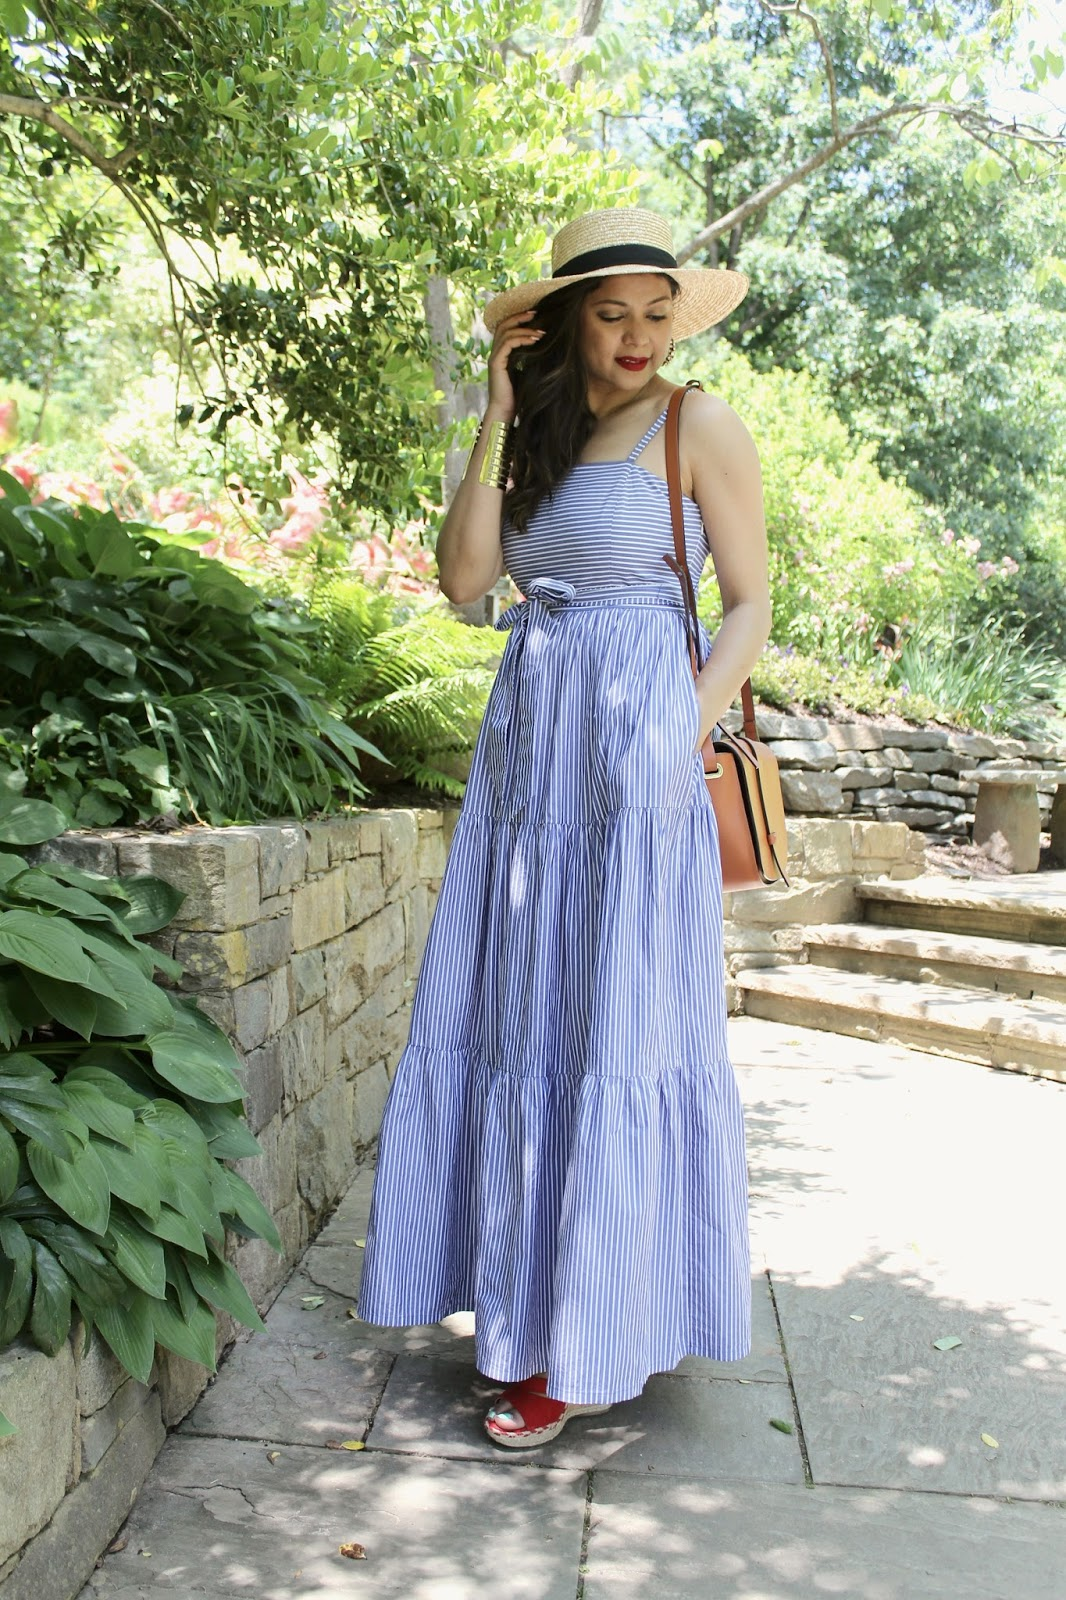 how to wear red, white & blue, maxi stripe dress, J crew maxi dress, red wedges, 4th july outfit, sailor hat, straw hat, street style, fashion blogger, style, ootd, saumya, summer style